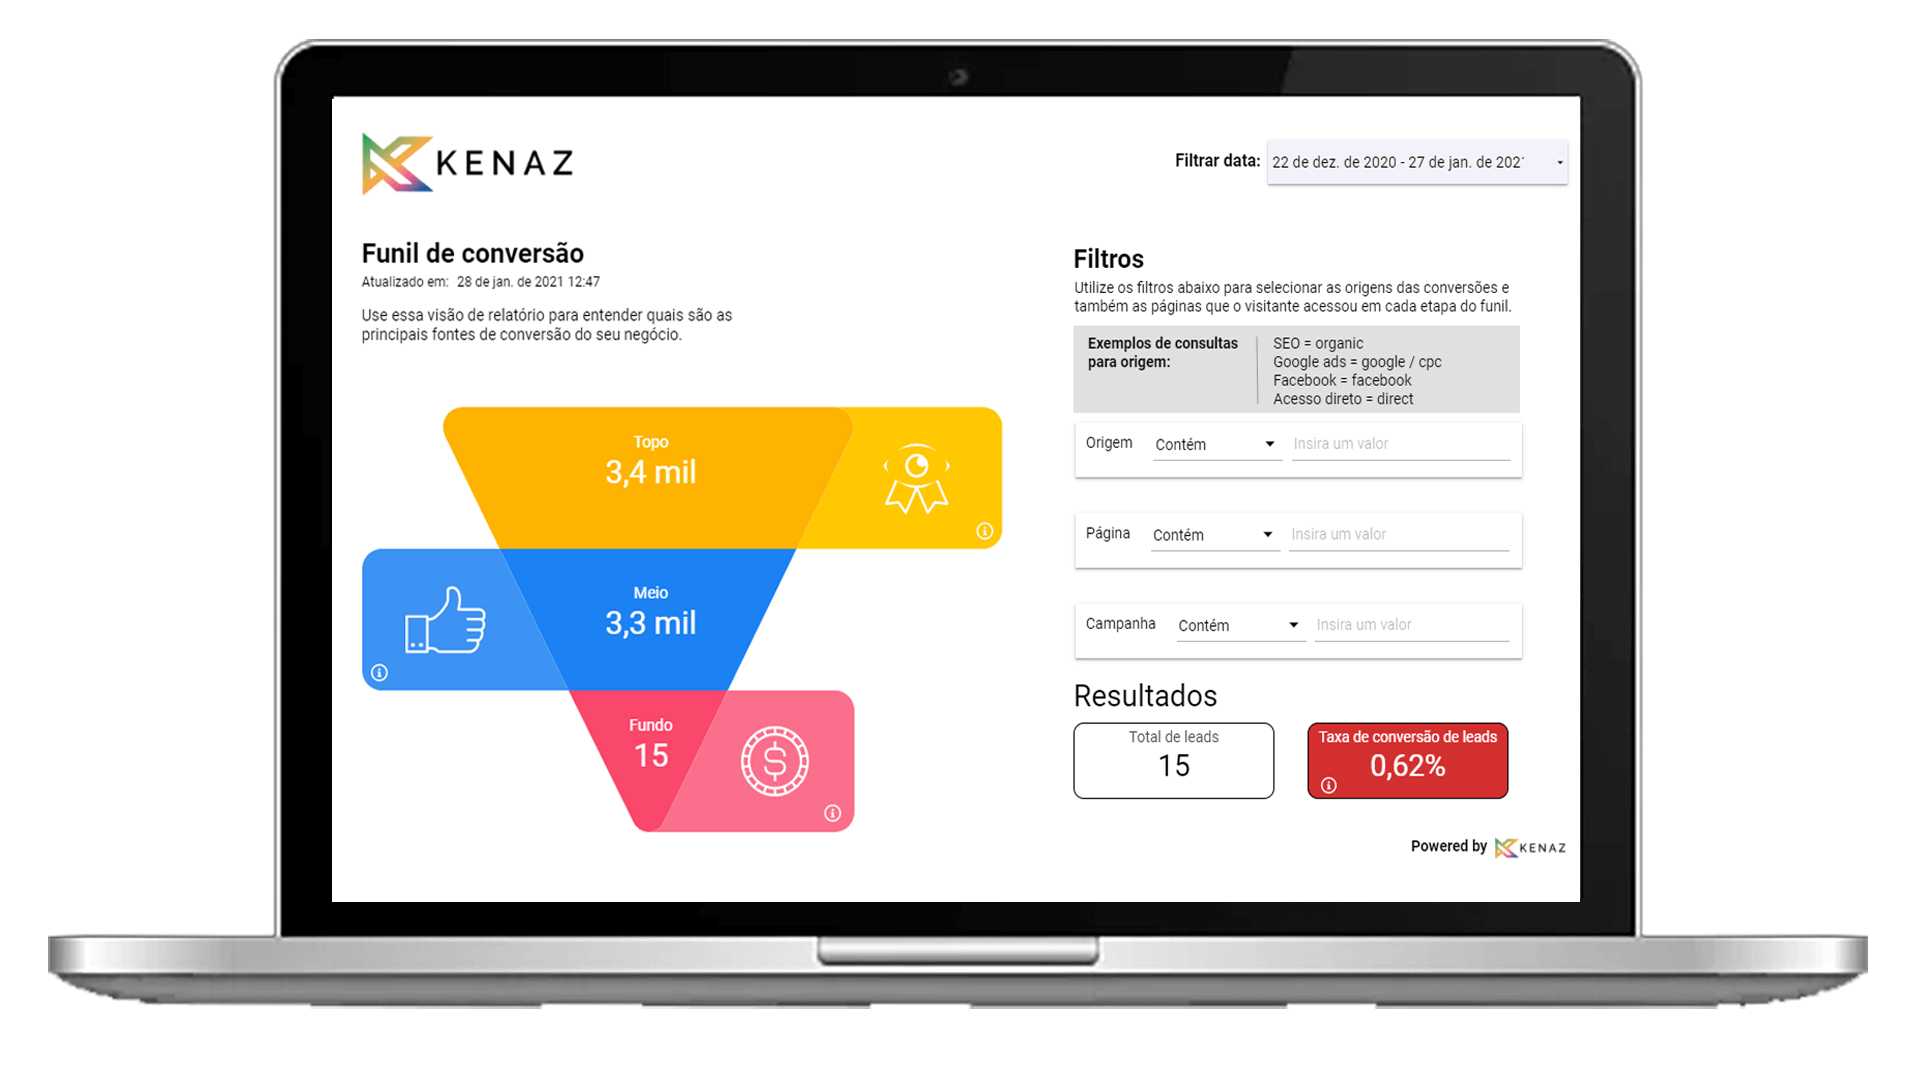 dashboard kenaz kpis metricas marketing tela